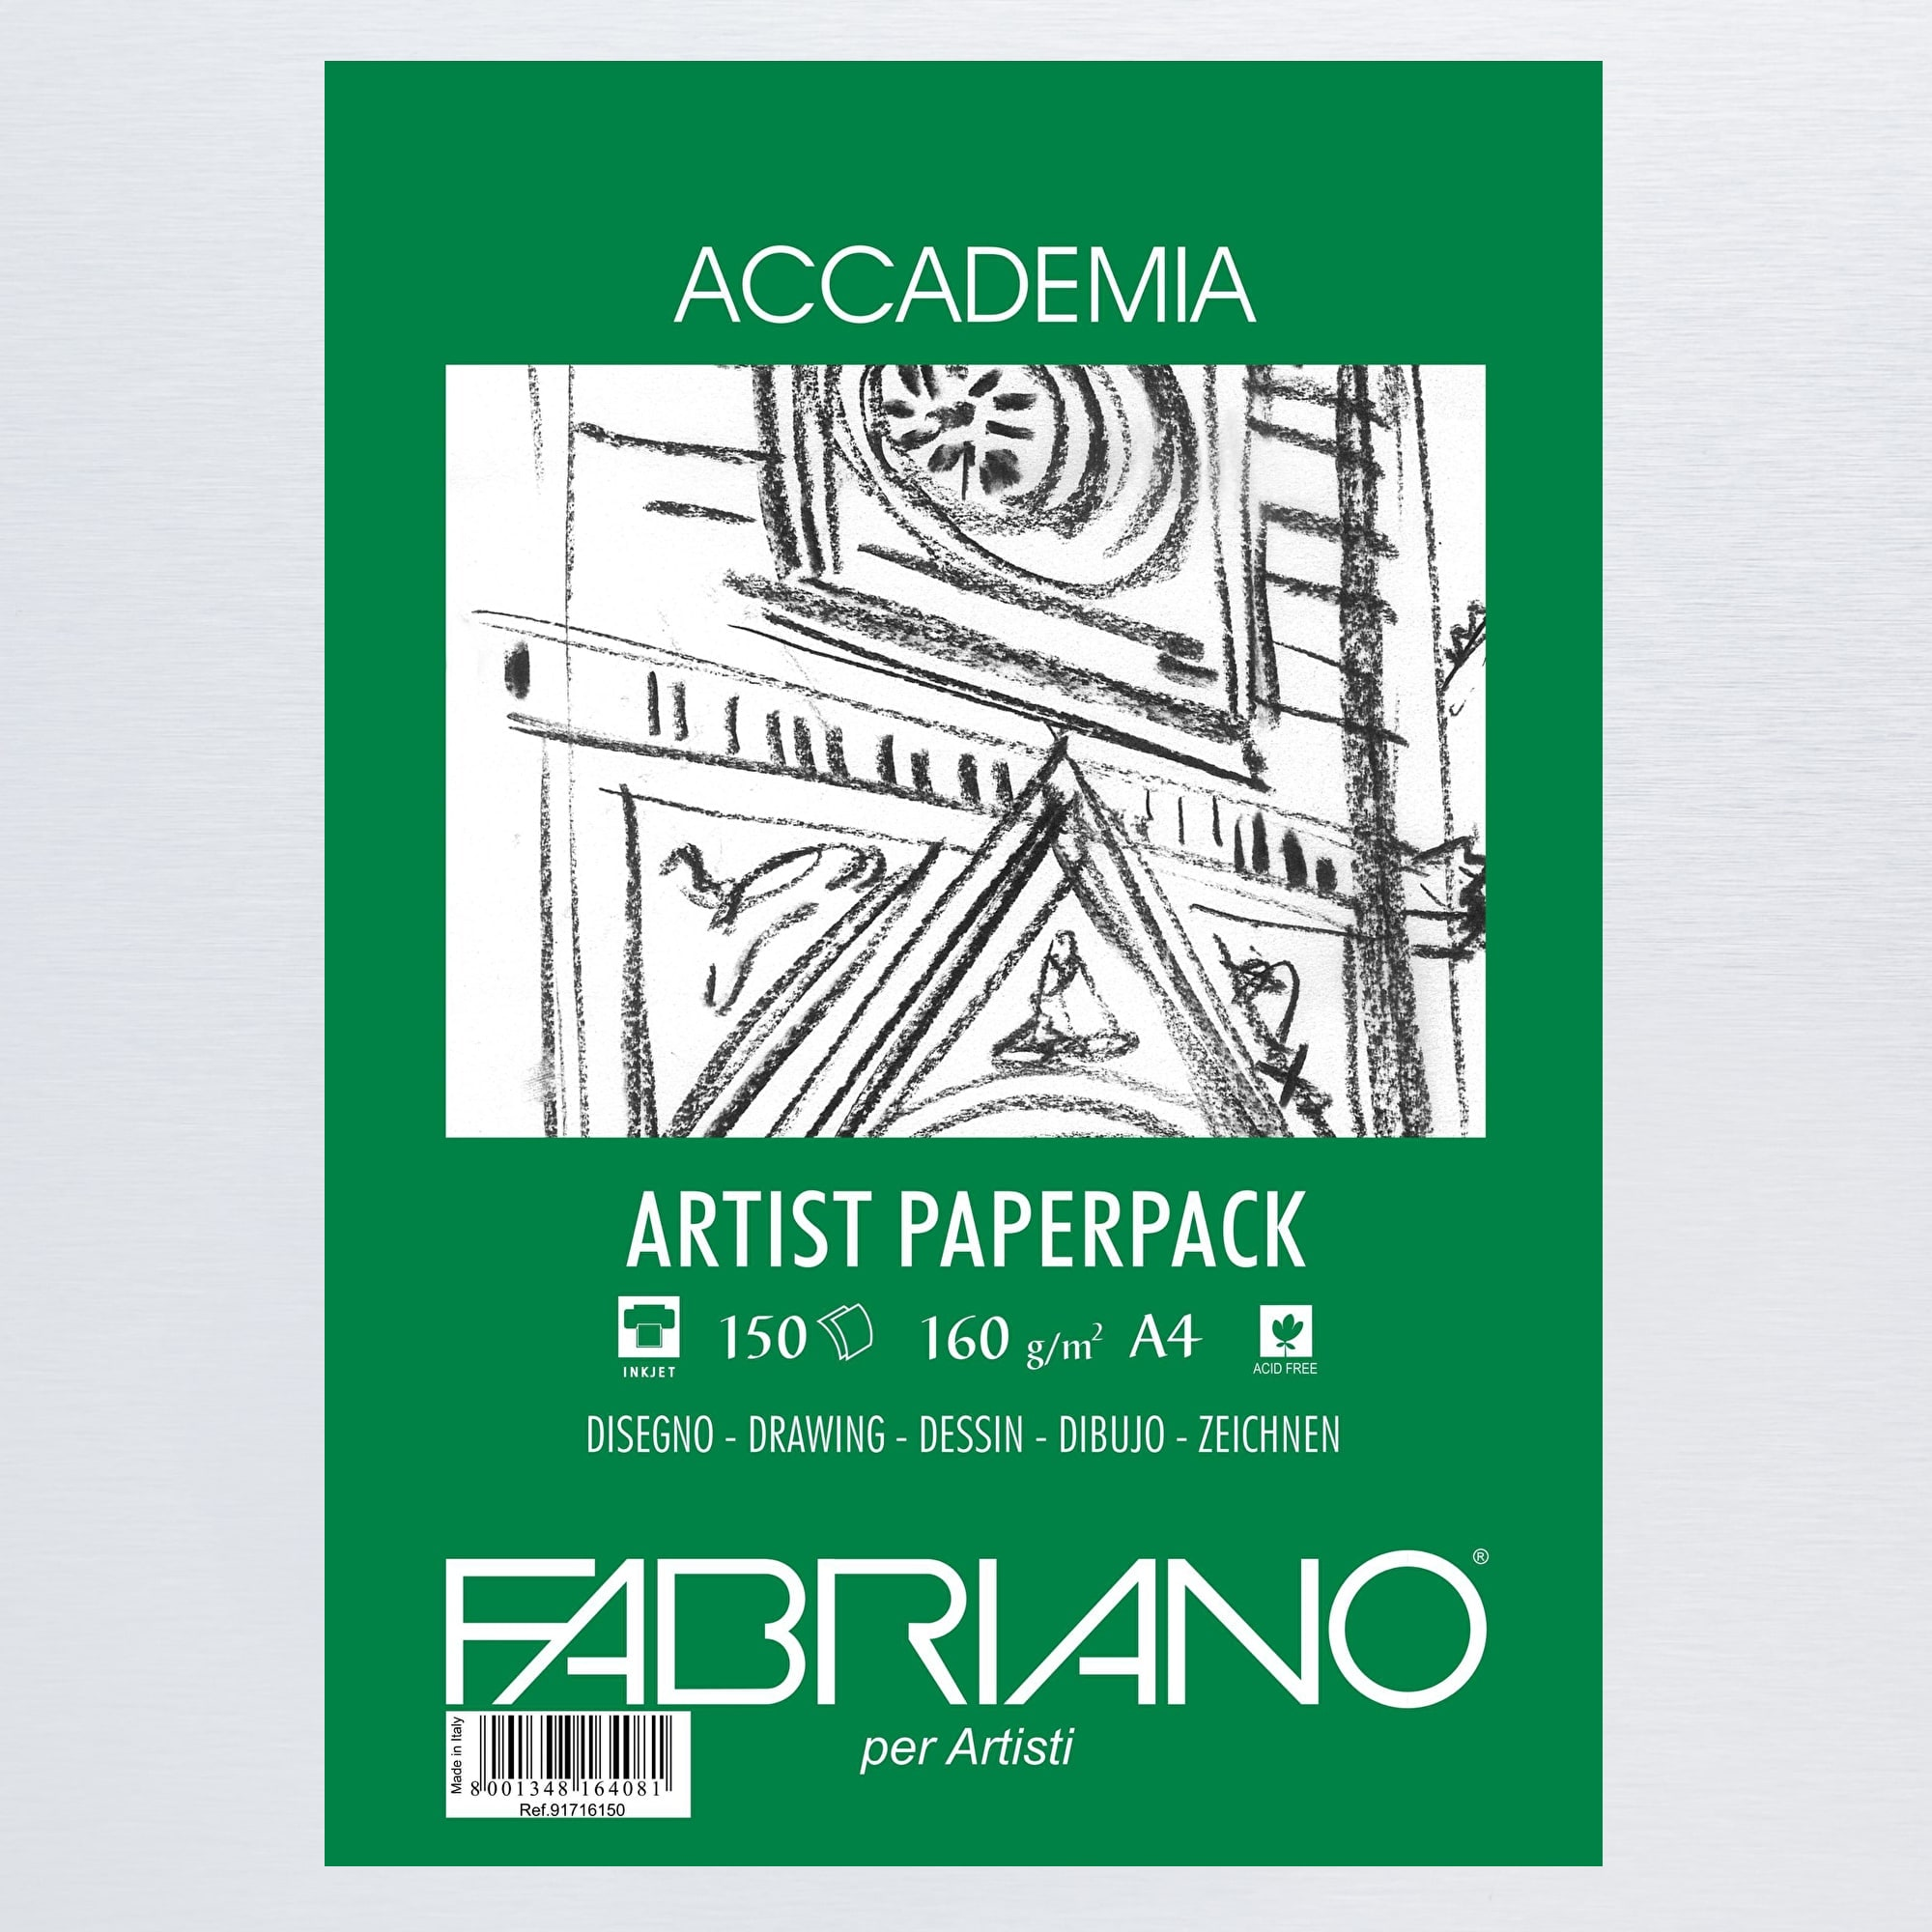 Fabriano accademia artist pack 160gsm 150 sheets a4 buy for Buy blueprint paper